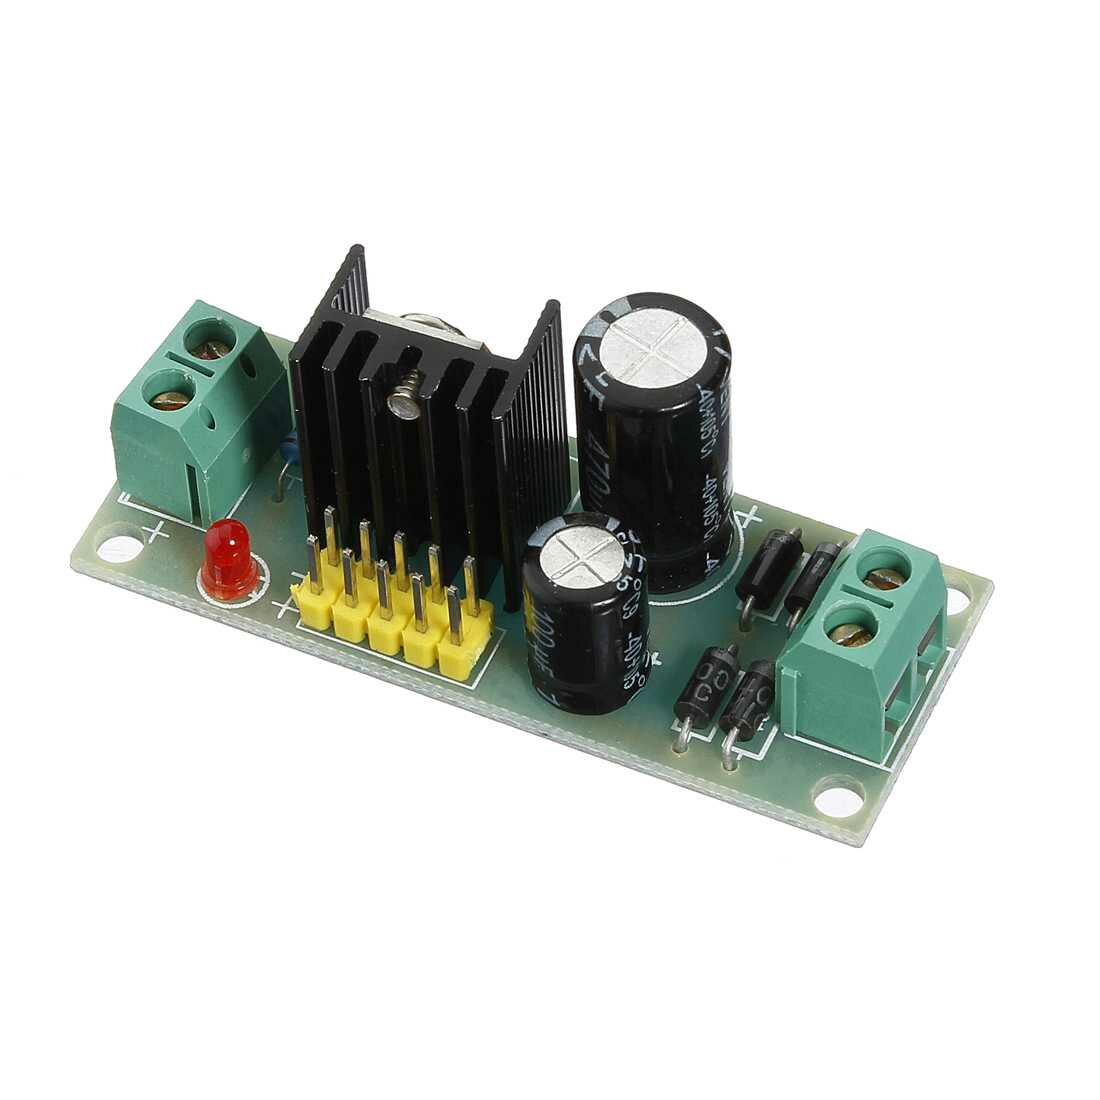 hight resolution of l7805 lm7805 three terminal voltage regulator module for arduino cod